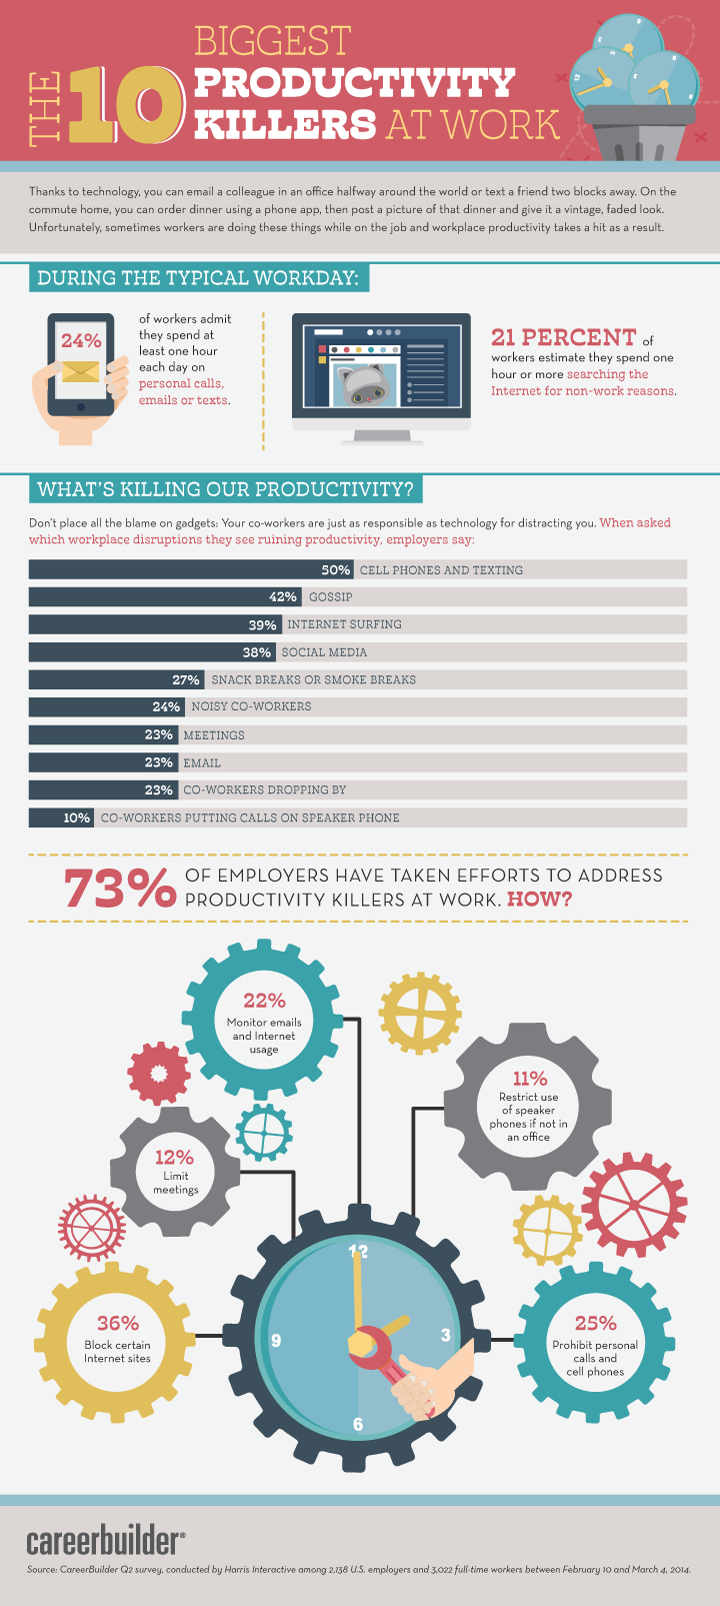 Productivity Killers 2014